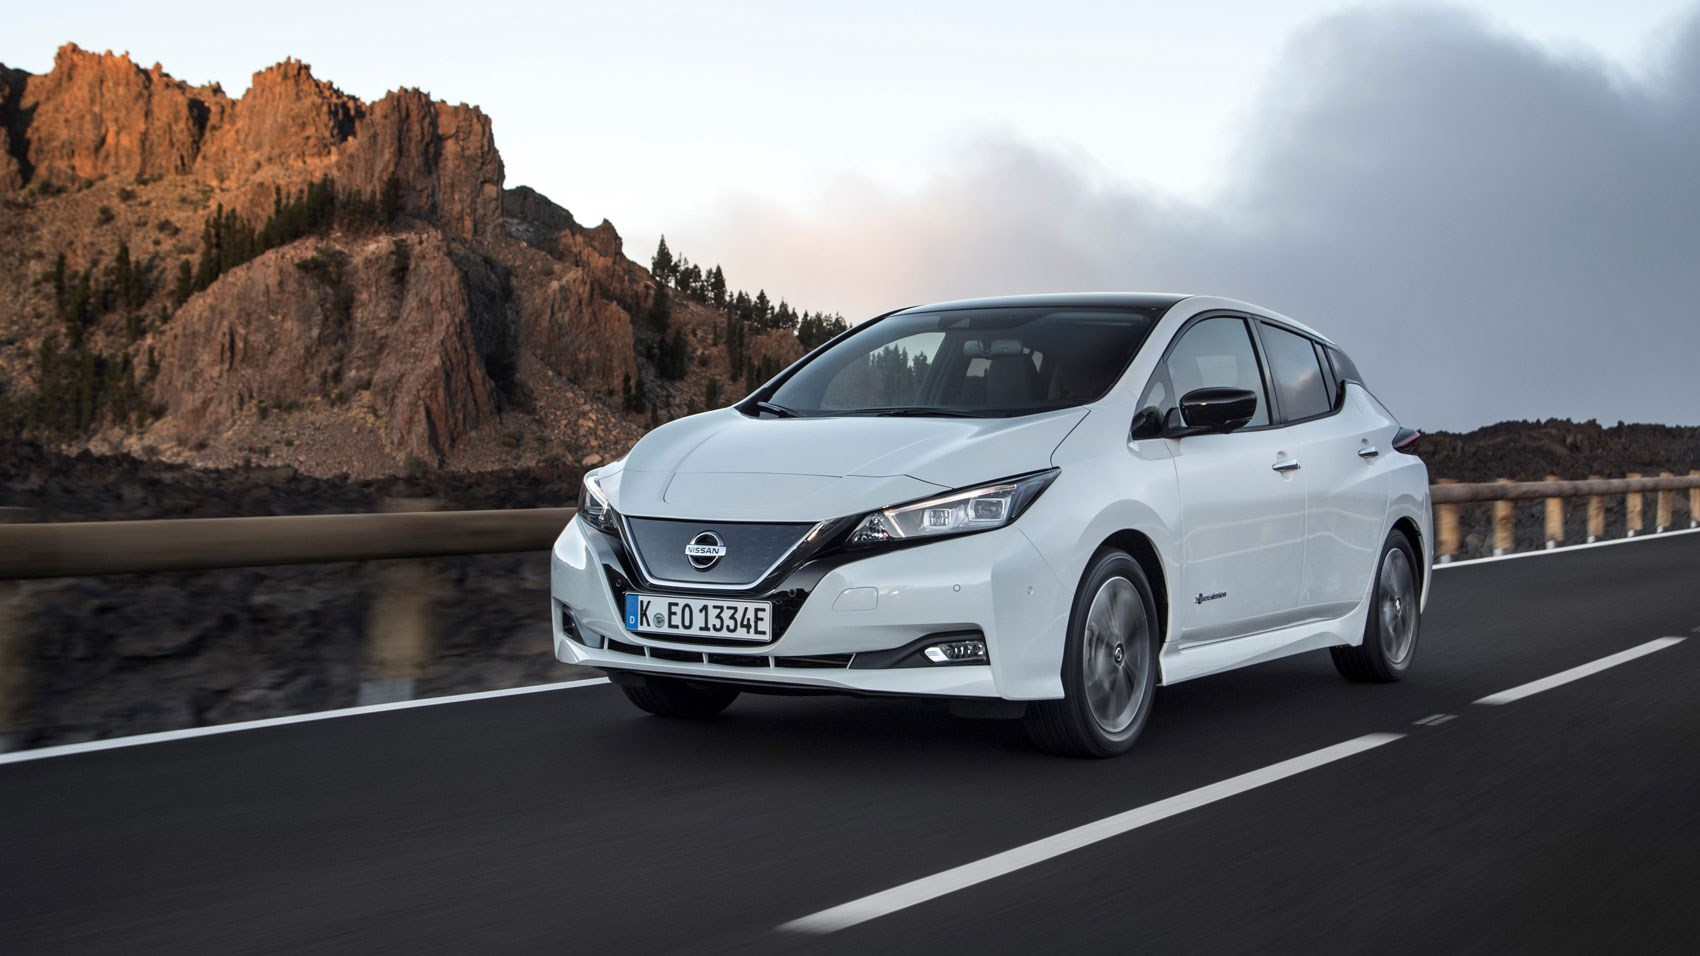 New Nissan Leaf (2018) review: wider appeal, less charm